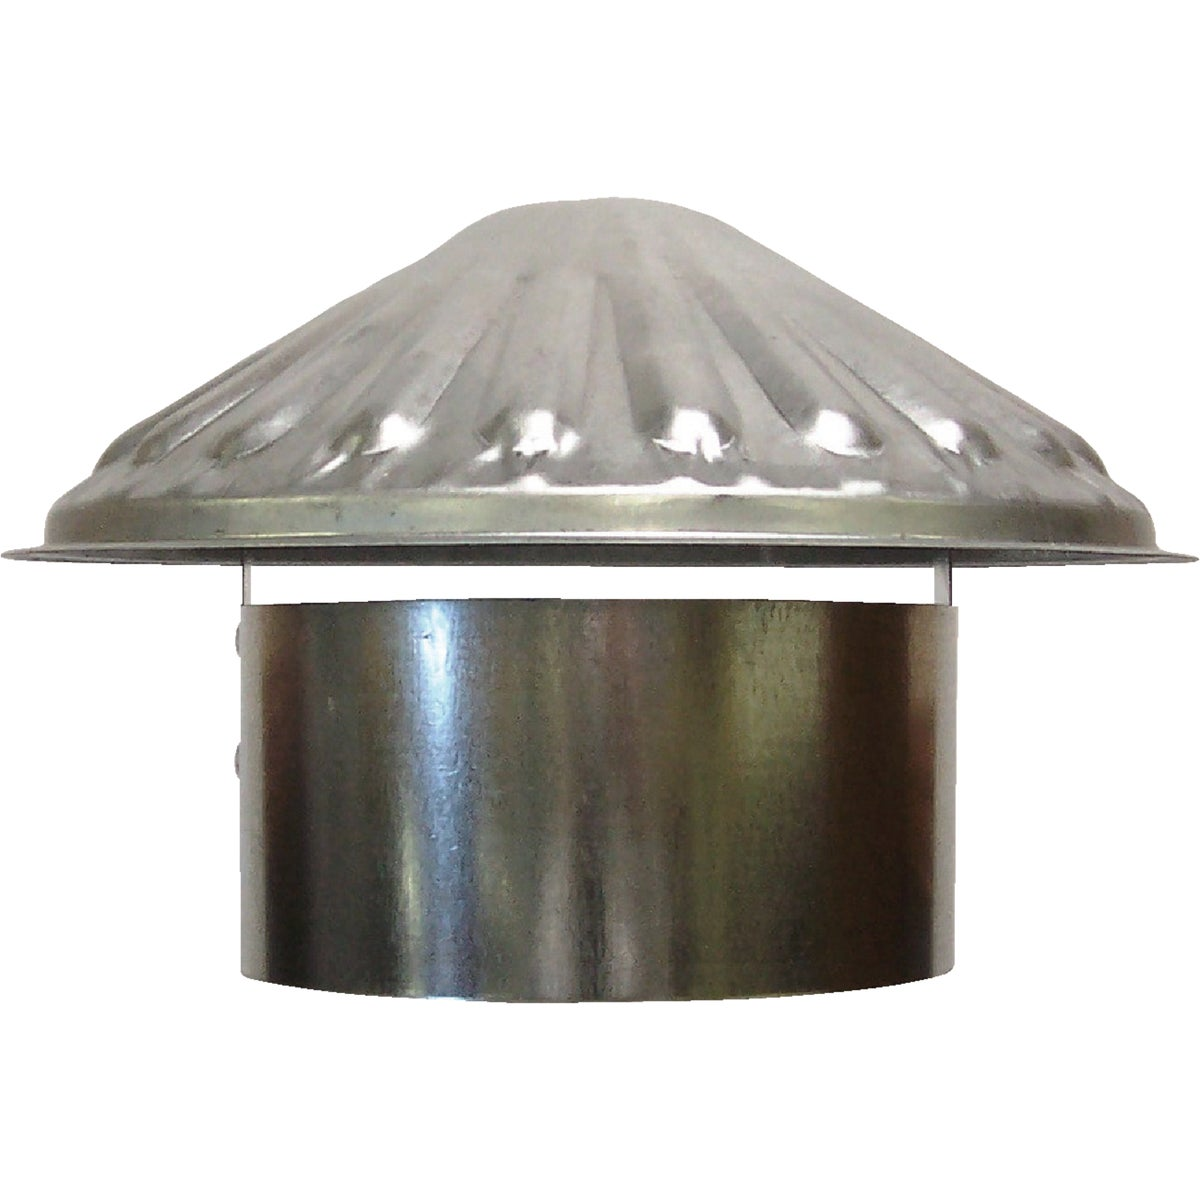 "5"" VENT PIPE CAP - D-285 by S & K Products Co"